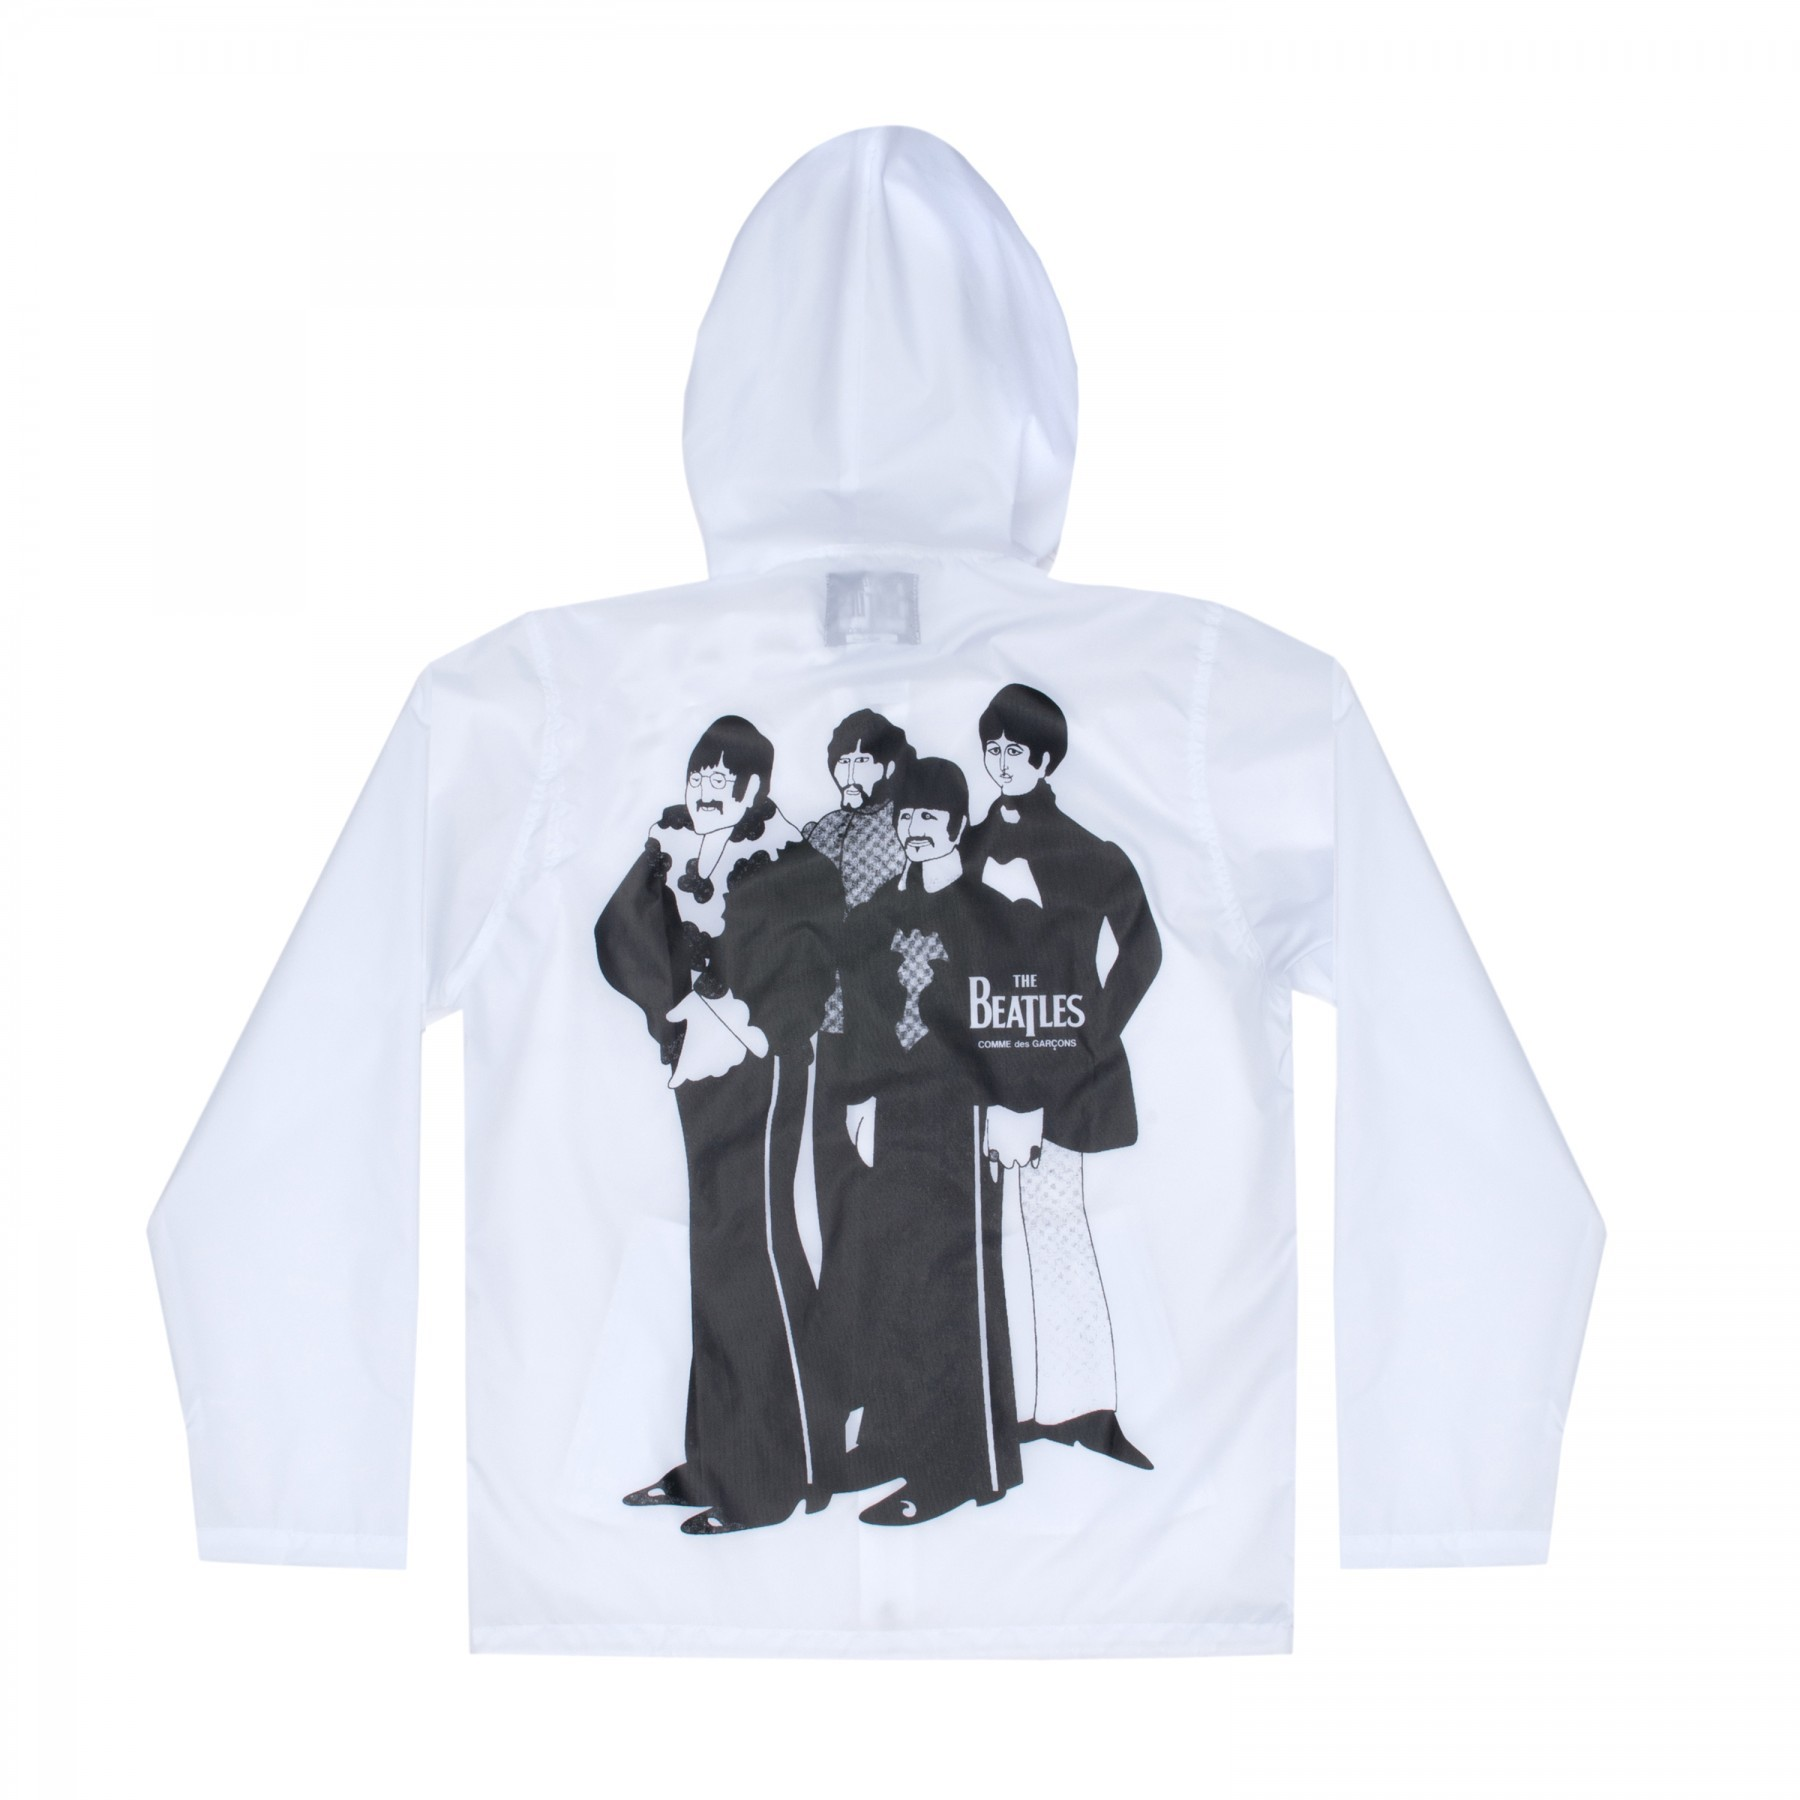 COMME DES GARCONS x THE BEATLES - The BEATLES x COMME DES GARCONS ВЕТРОВКА БЕЛАЯ С ПРИНТОМ